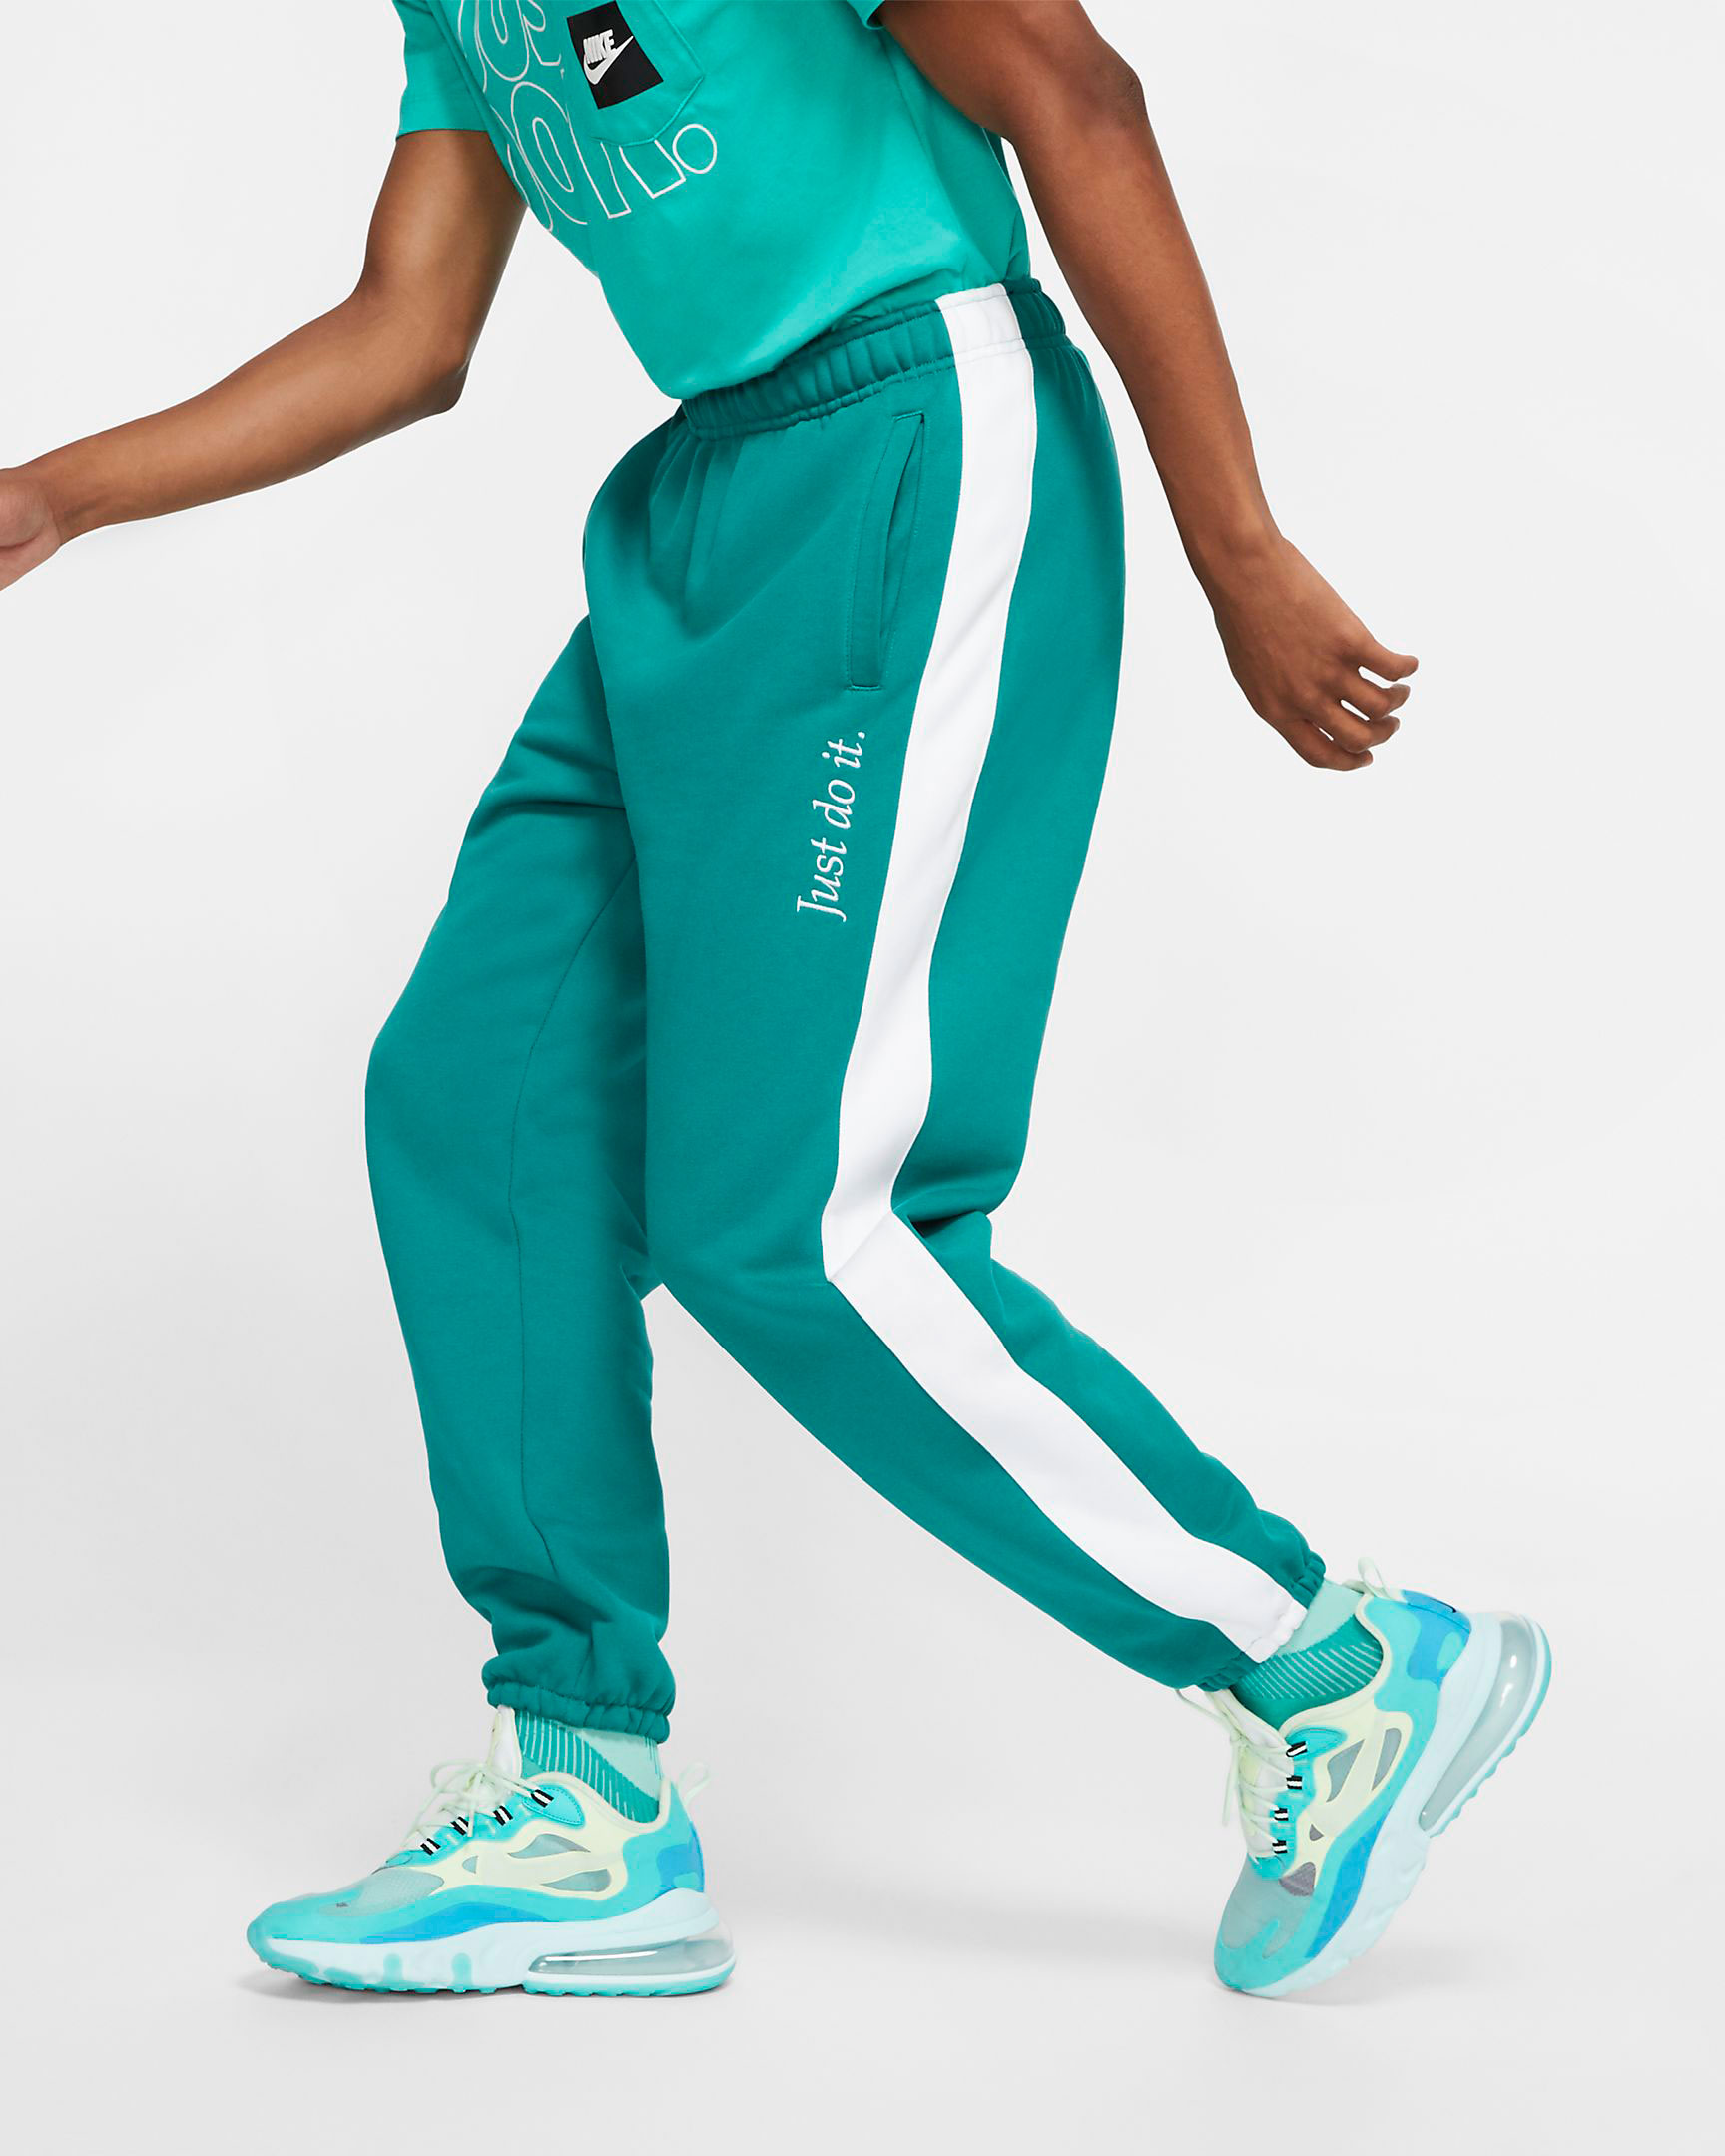 nike-island-green-just-do-it-jogger-pants-1